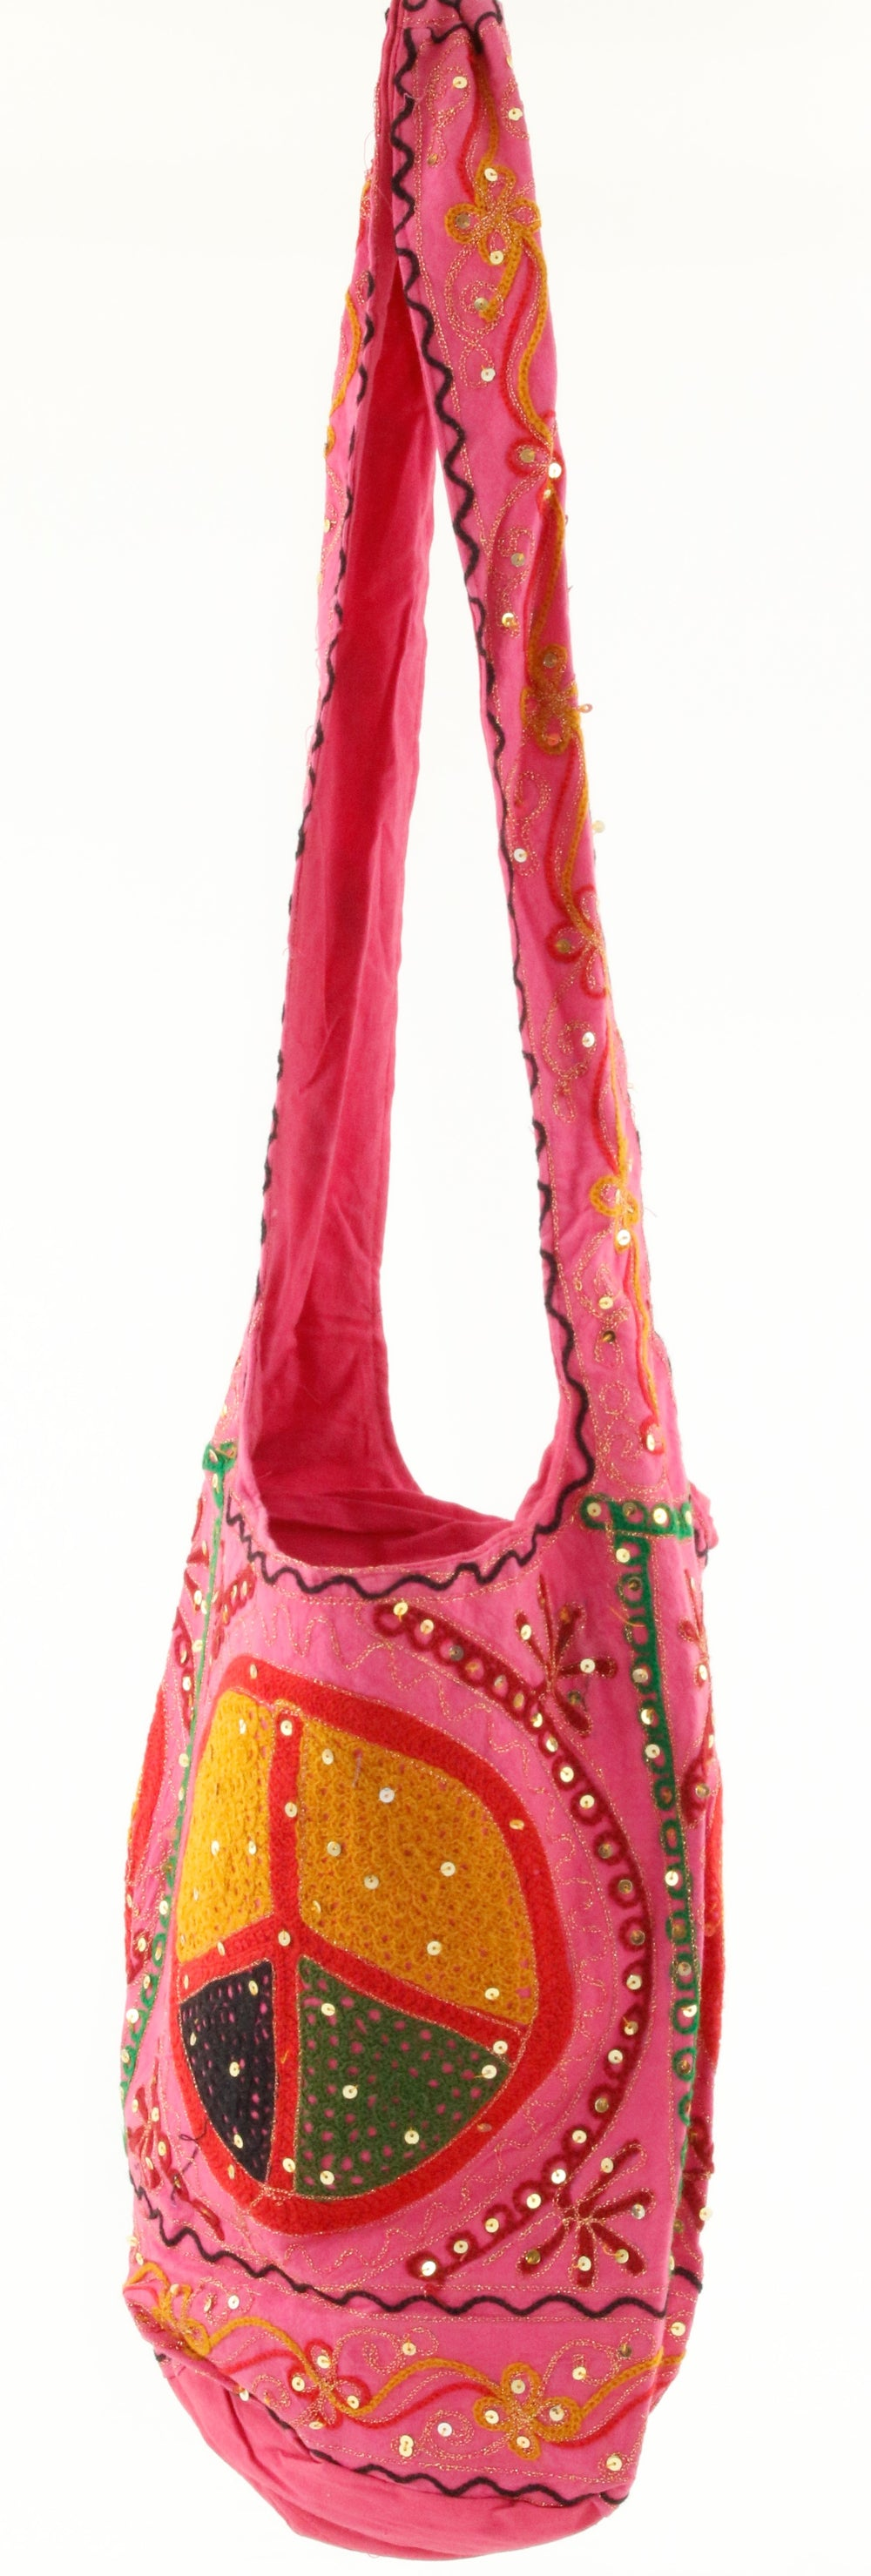 PEACE SIGN SEQUINED BAG PINK